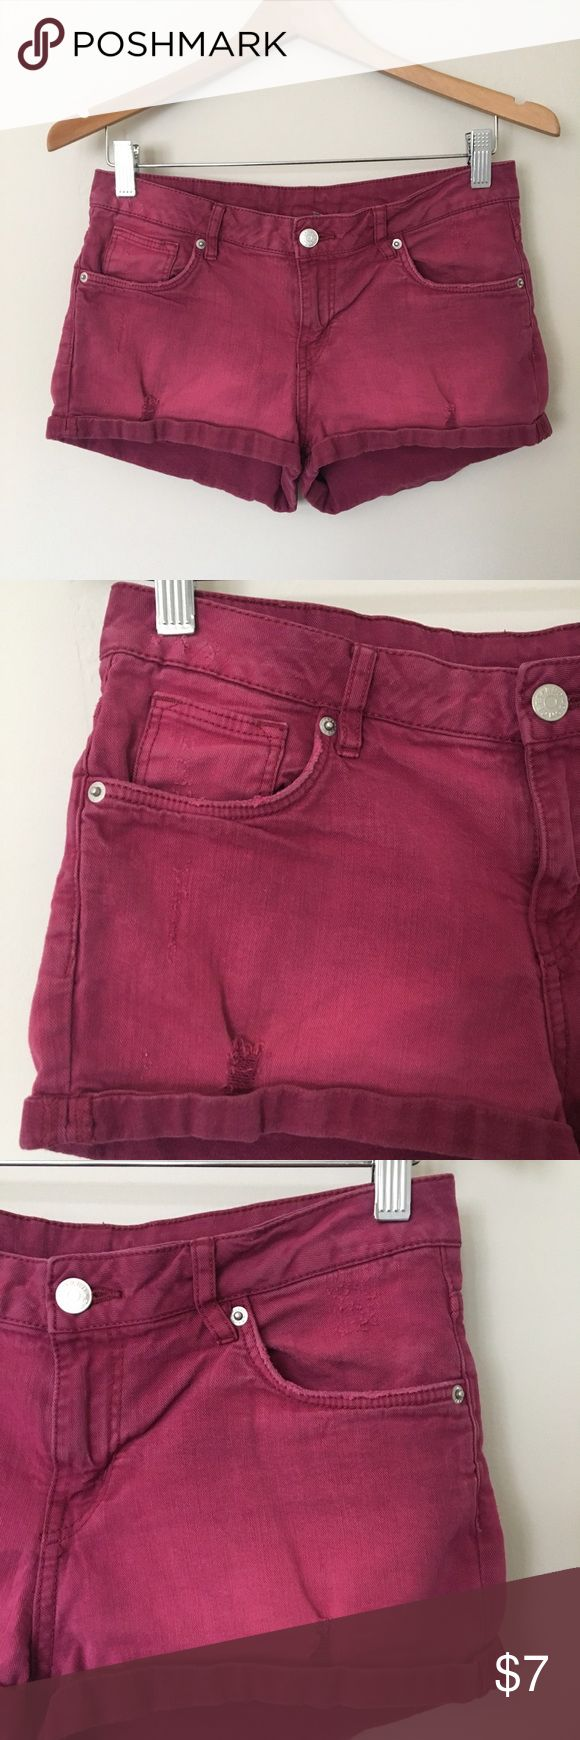 Distressed Deep Berry Shorts Distressed washed deep berry magenta denim shorts by Divided from H&M. Worn about 4-5 times and are still in very good condition. No flaws. Distressed markings and dye all throughout. I would say these are low-rise to normal fit. Disclaimer: first modeled photo is not mine; I found it online. However, the second modeled photo is mine. Tag says size 6. Please see measurements for better fit.  Measurements laying flat: Waist: 15 inches Length: 9.5 inches Inseam…